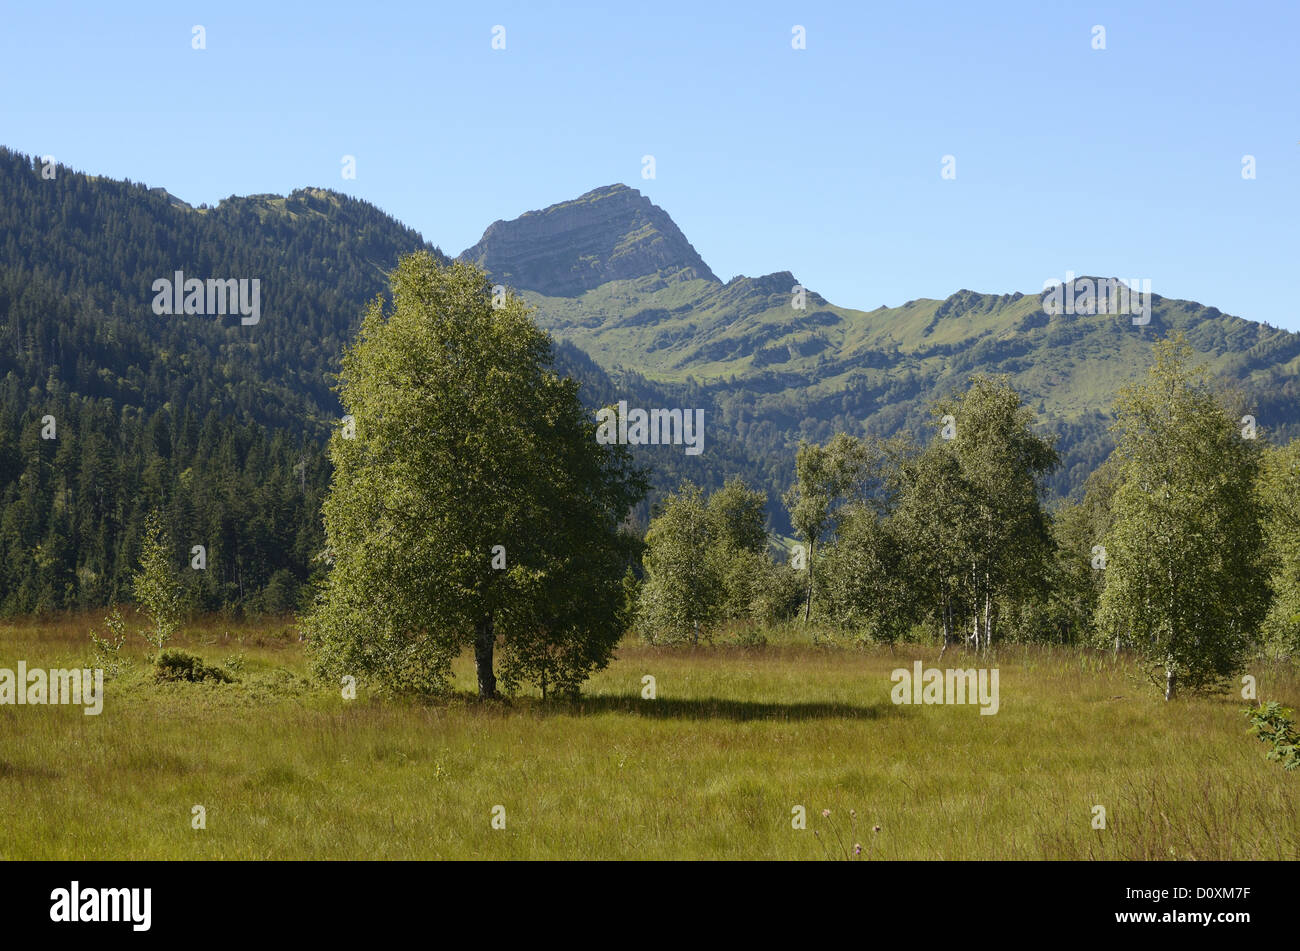 Upland moor, Riedach, Nesslau, birch-tree, Speer, mountain, Canton, St. Gall, Switzerland - Stock Image